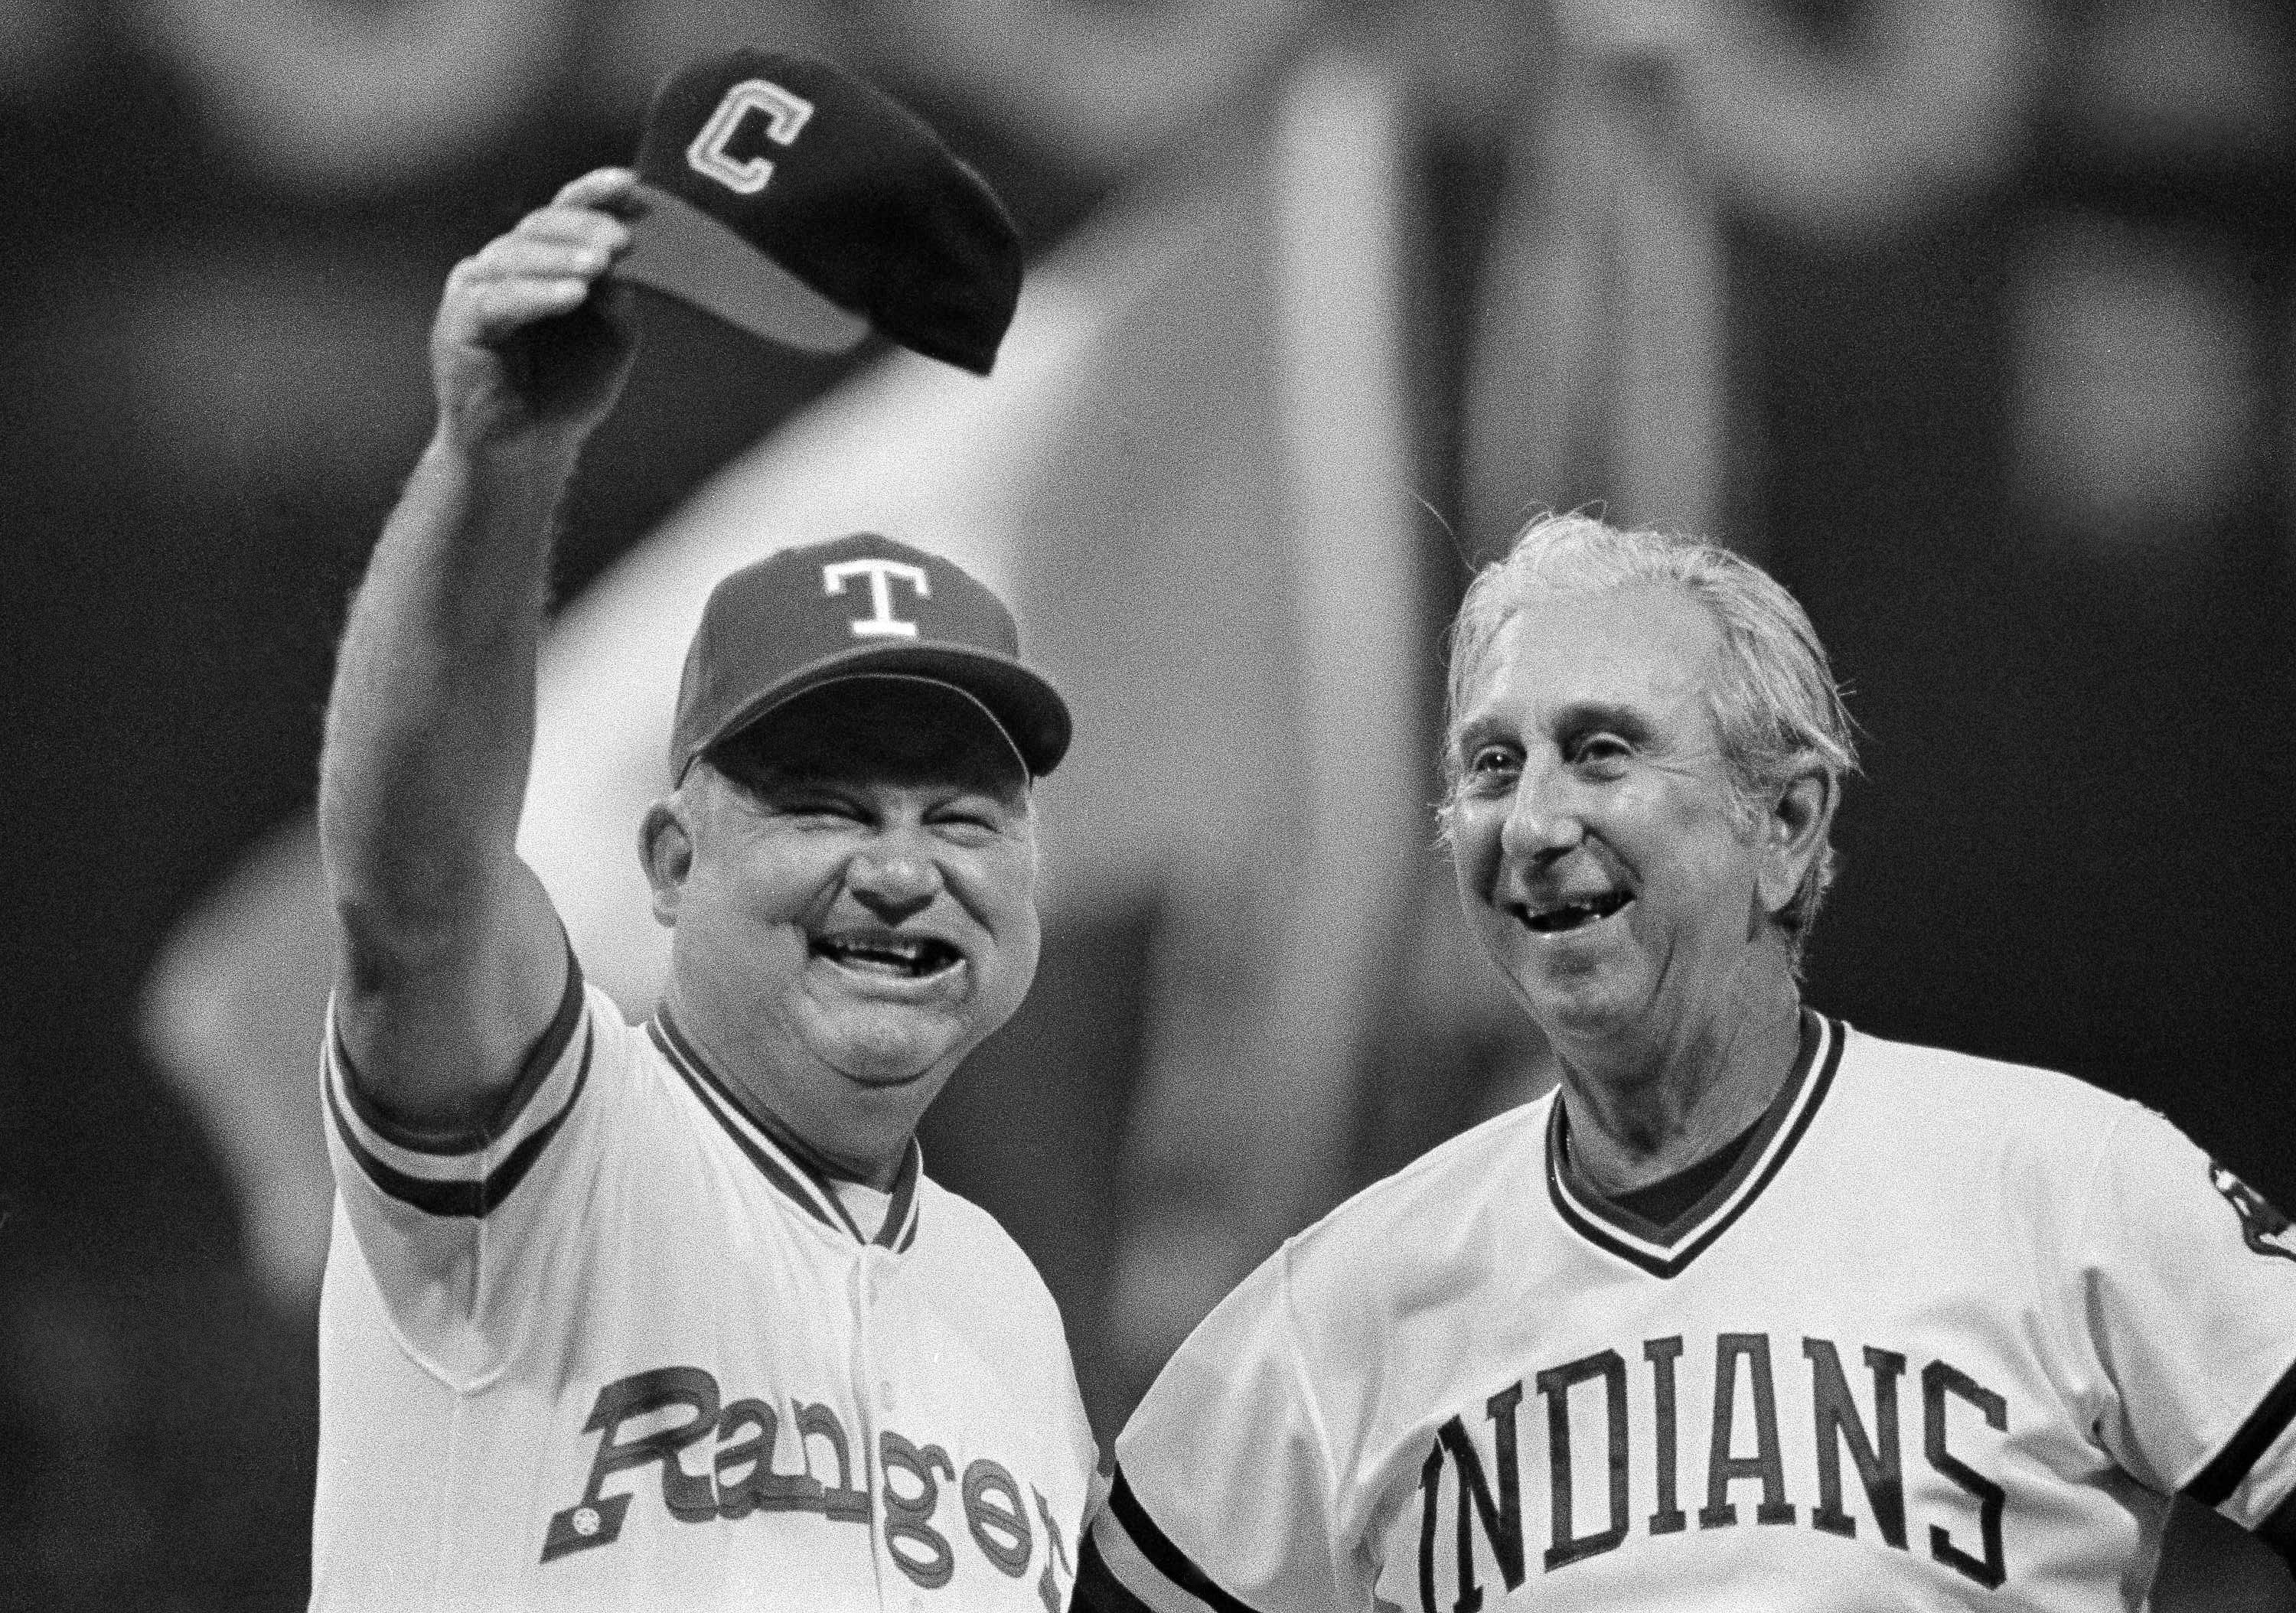 Managers Don Zimmer and Dave Garcia donned the traditional All-Star gear at the 1981 game in Cleveland.